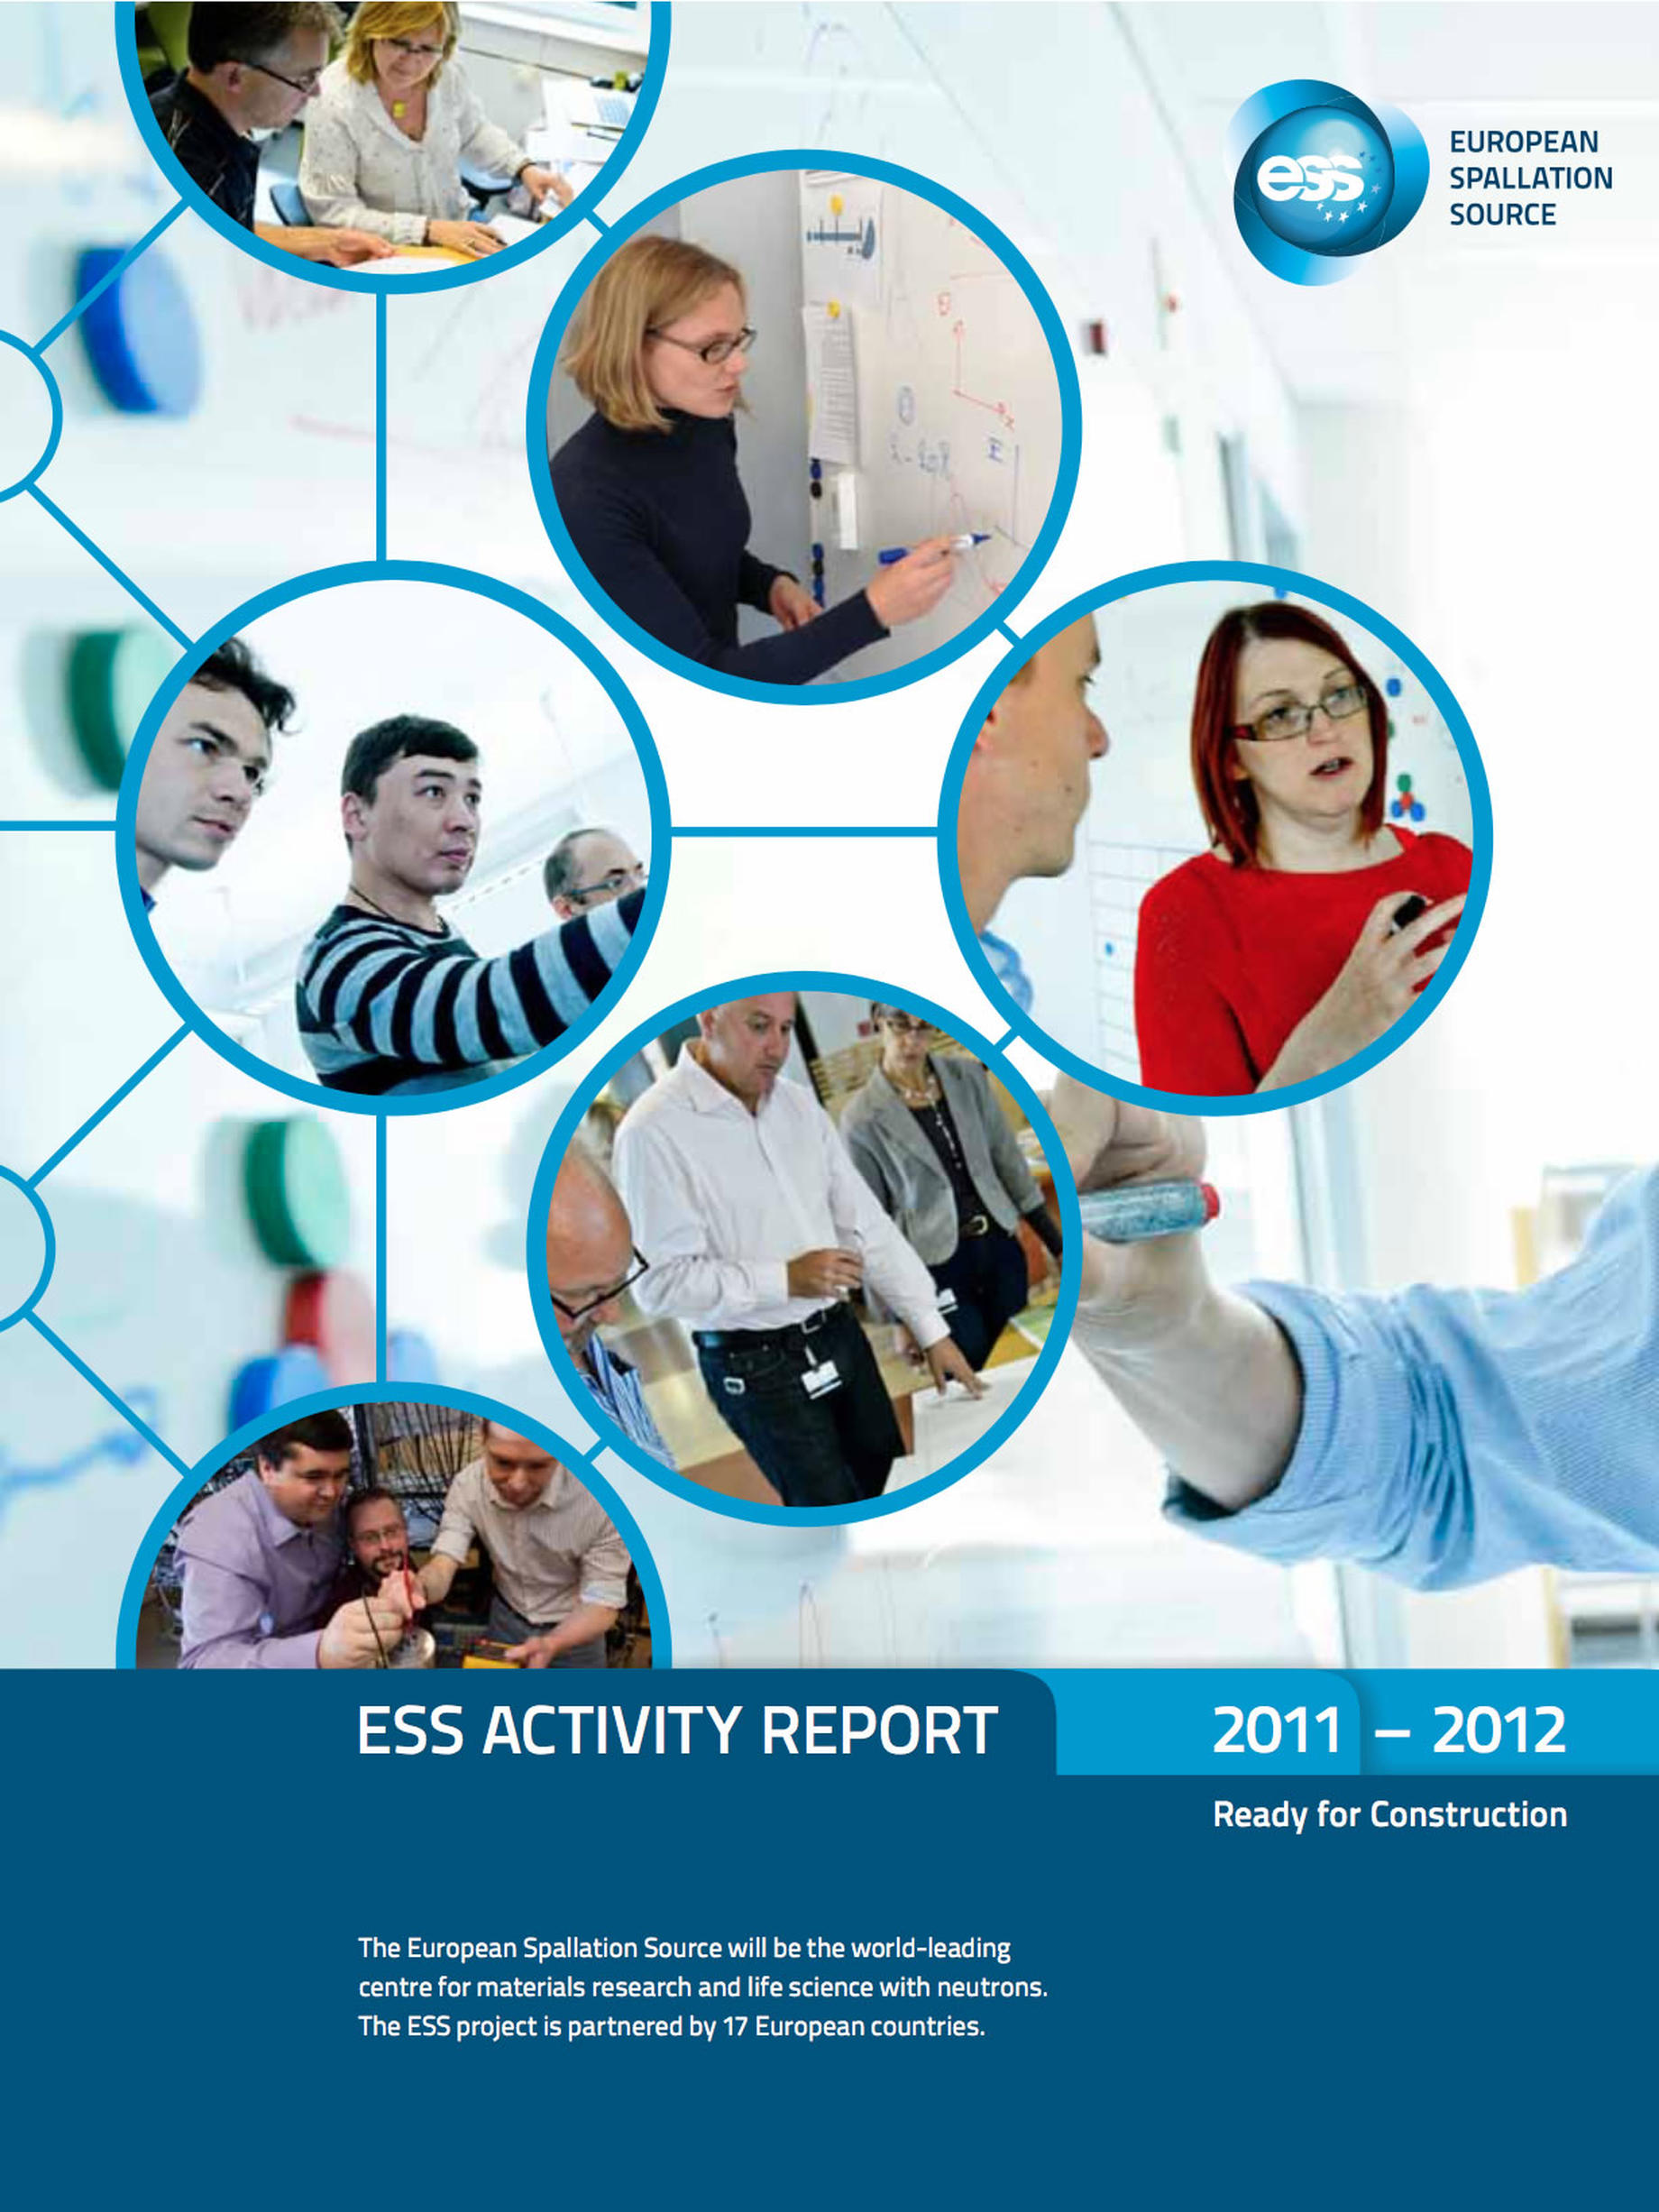 ActivityReport2011_2012_cover.jpg